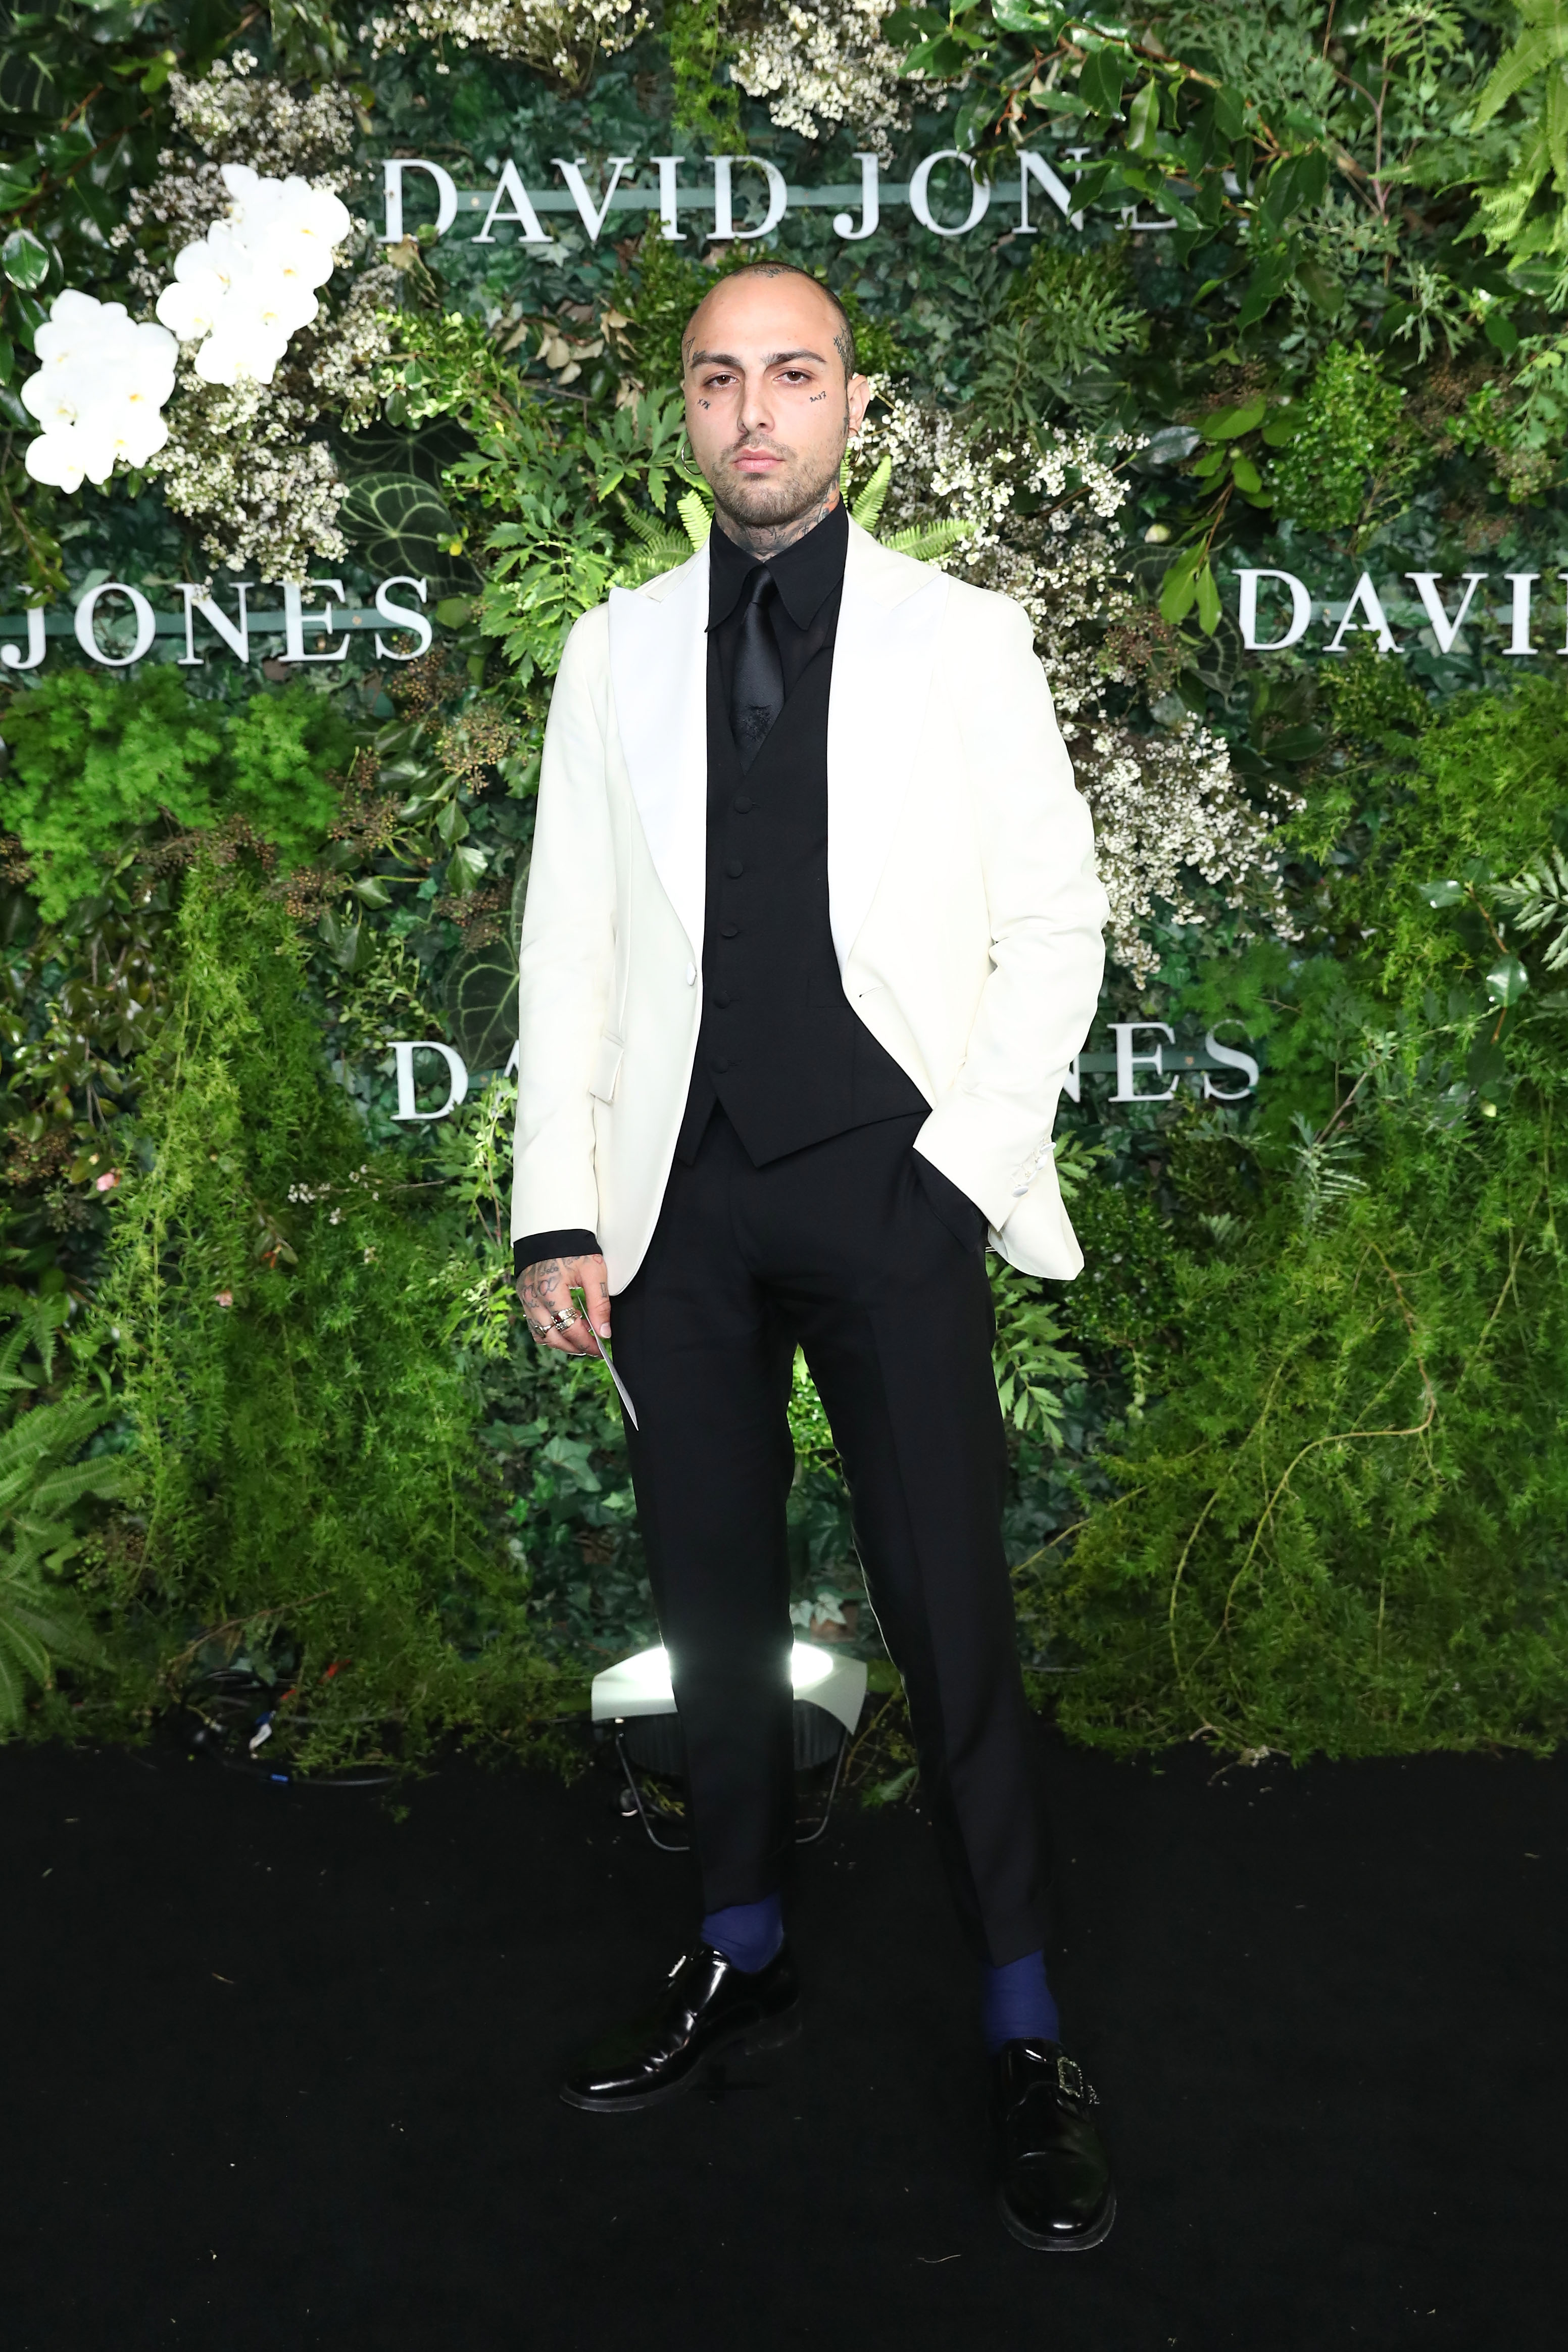 SYDNEY, AUSTRALIA - AUGUST 08:  Roberto Malizia attends the David Jones Spring Summer 18 Collections Launch at Fox Studios on August 8, 2018 in Sydney, Australia.  (Photo by Mark Metcalfe/Getty Images for David Jones) *** Local Caption *** Roberto Malizia